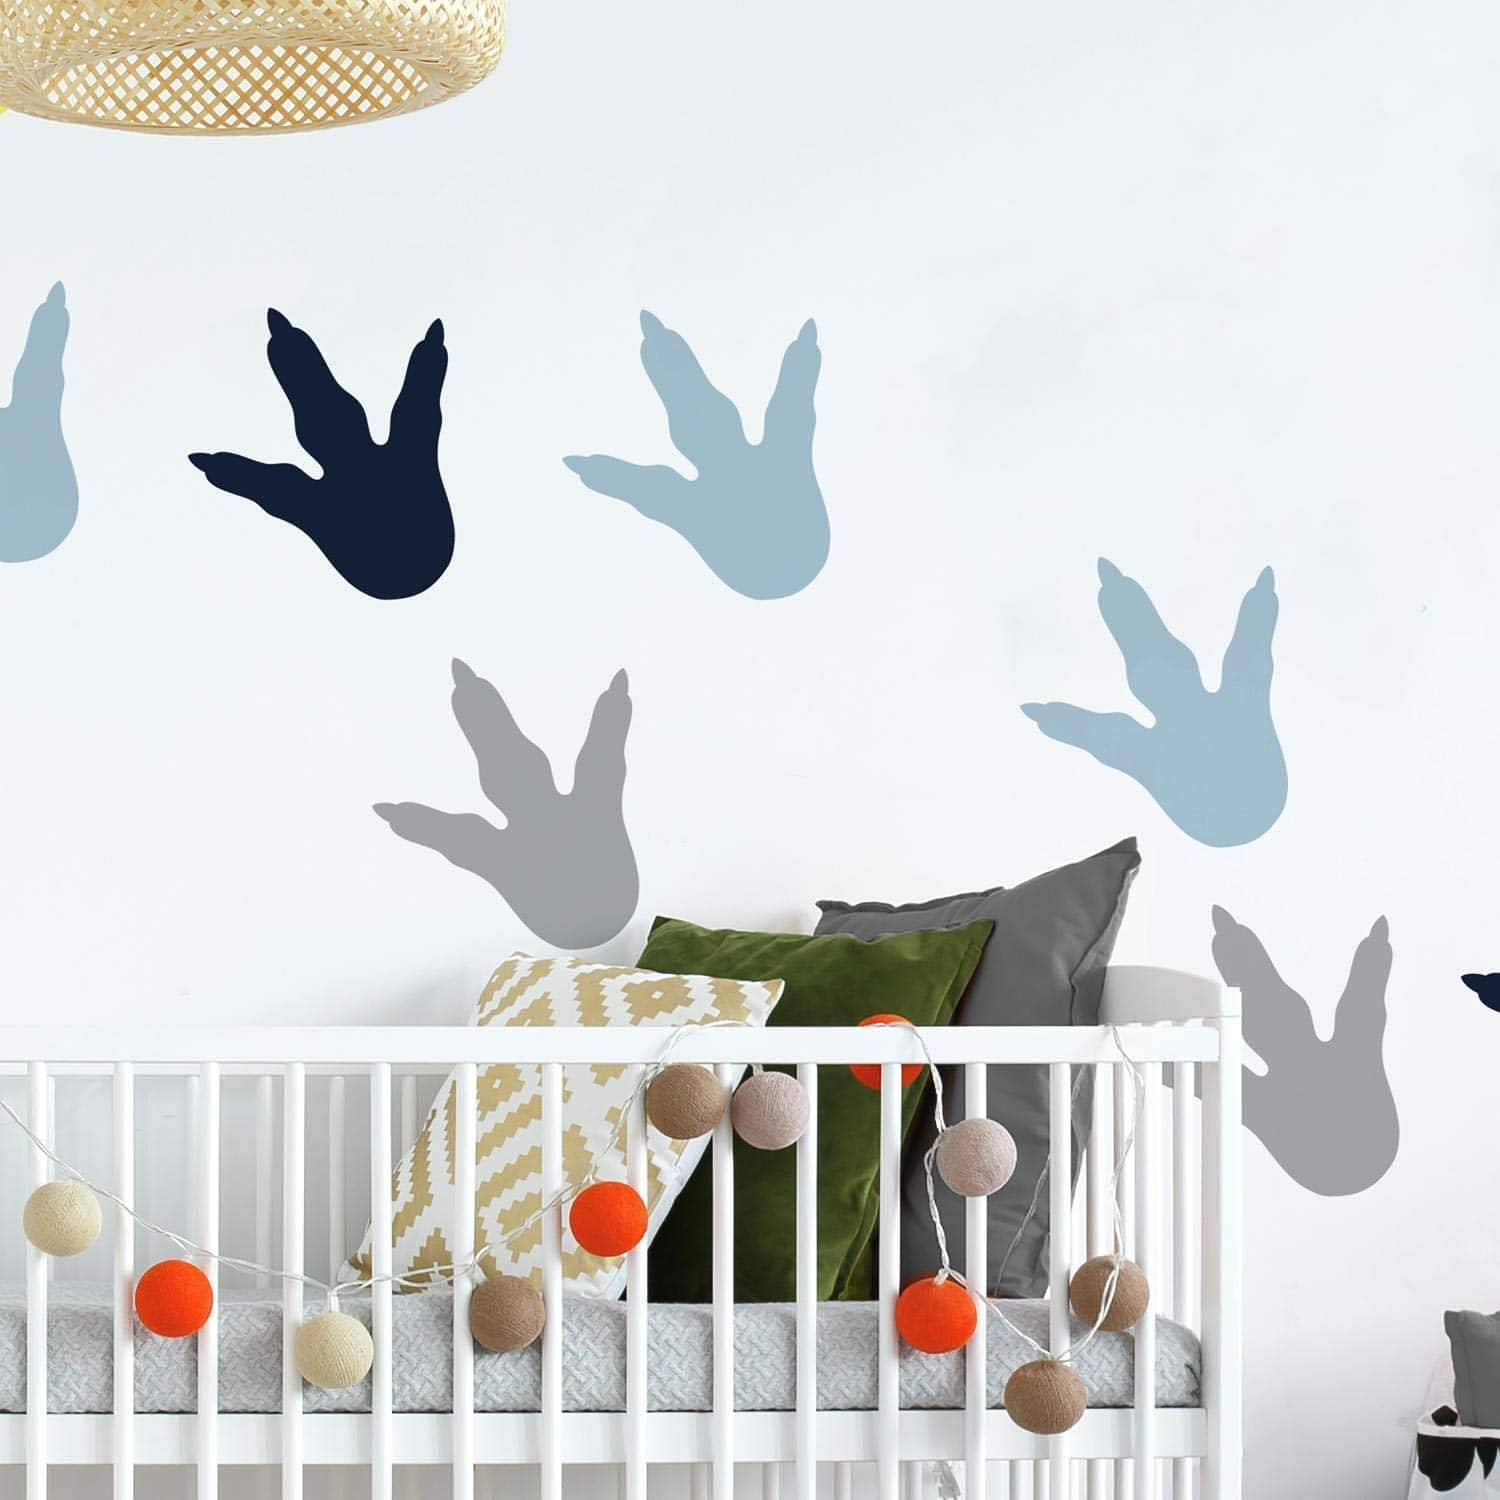 dinosaur-gifts-and-toys-wall-decal